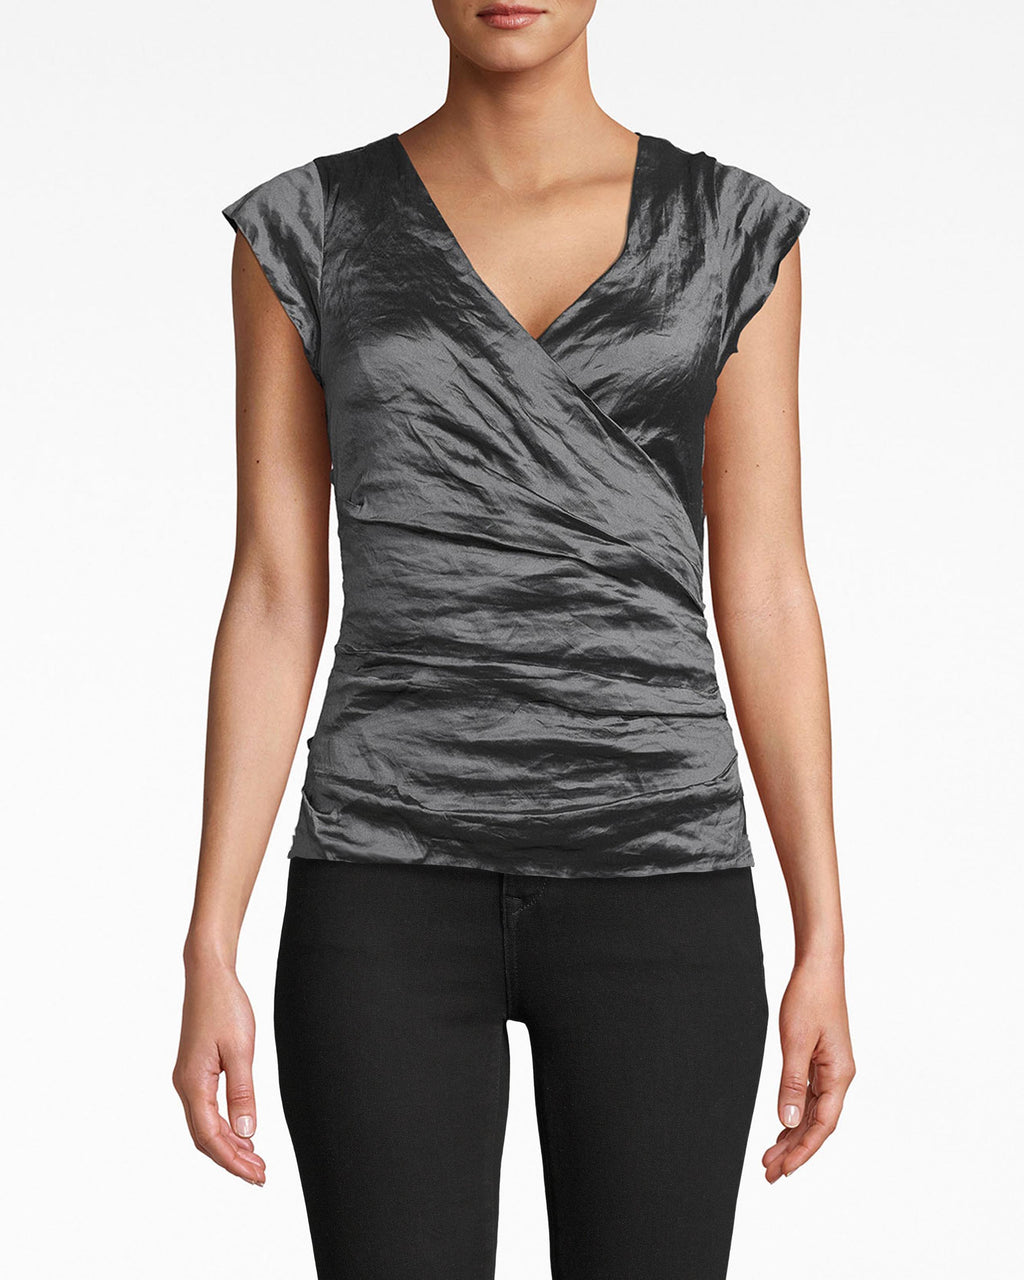 BH10101 - LOGAN TECHNO METAL V-NECK TOP - tops - shirts - The chic v-neck on this textured cap sleeve top opens up your frame. It's perfect for a denim and leather look. Exposed back zipper for closure.